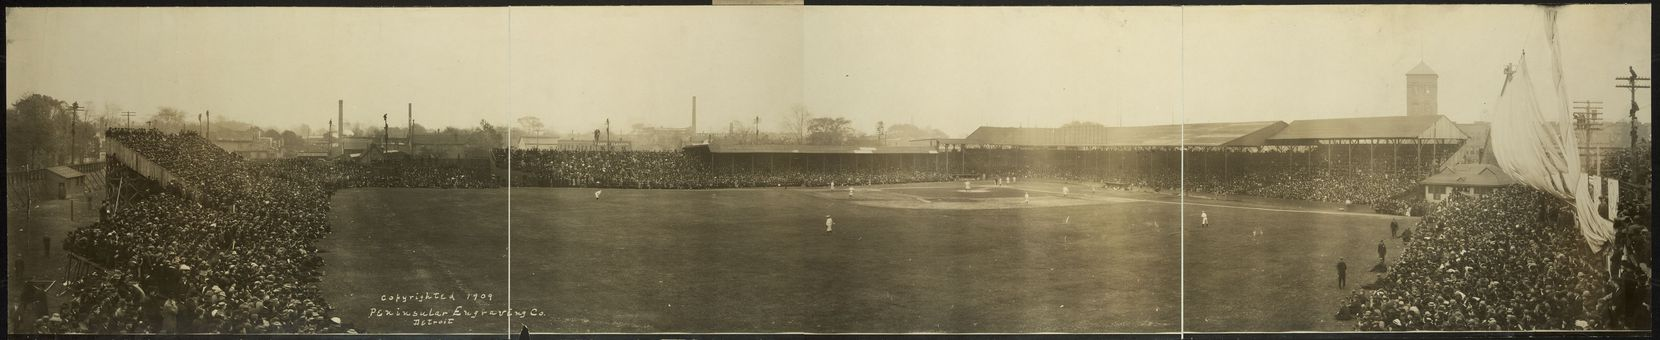 Bennett Park, an early forerunner to Tigers Stadium in Detroit, hosted a World Series game between the Tigers and Chicago Cubs in 1909.